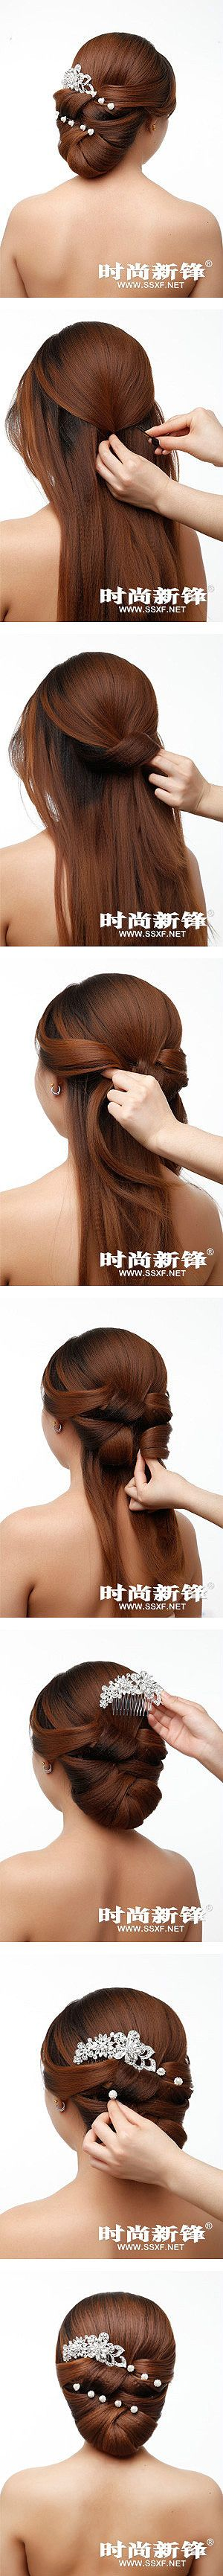 best 发型 images on pinterest cute hairstyles easy hairstyle